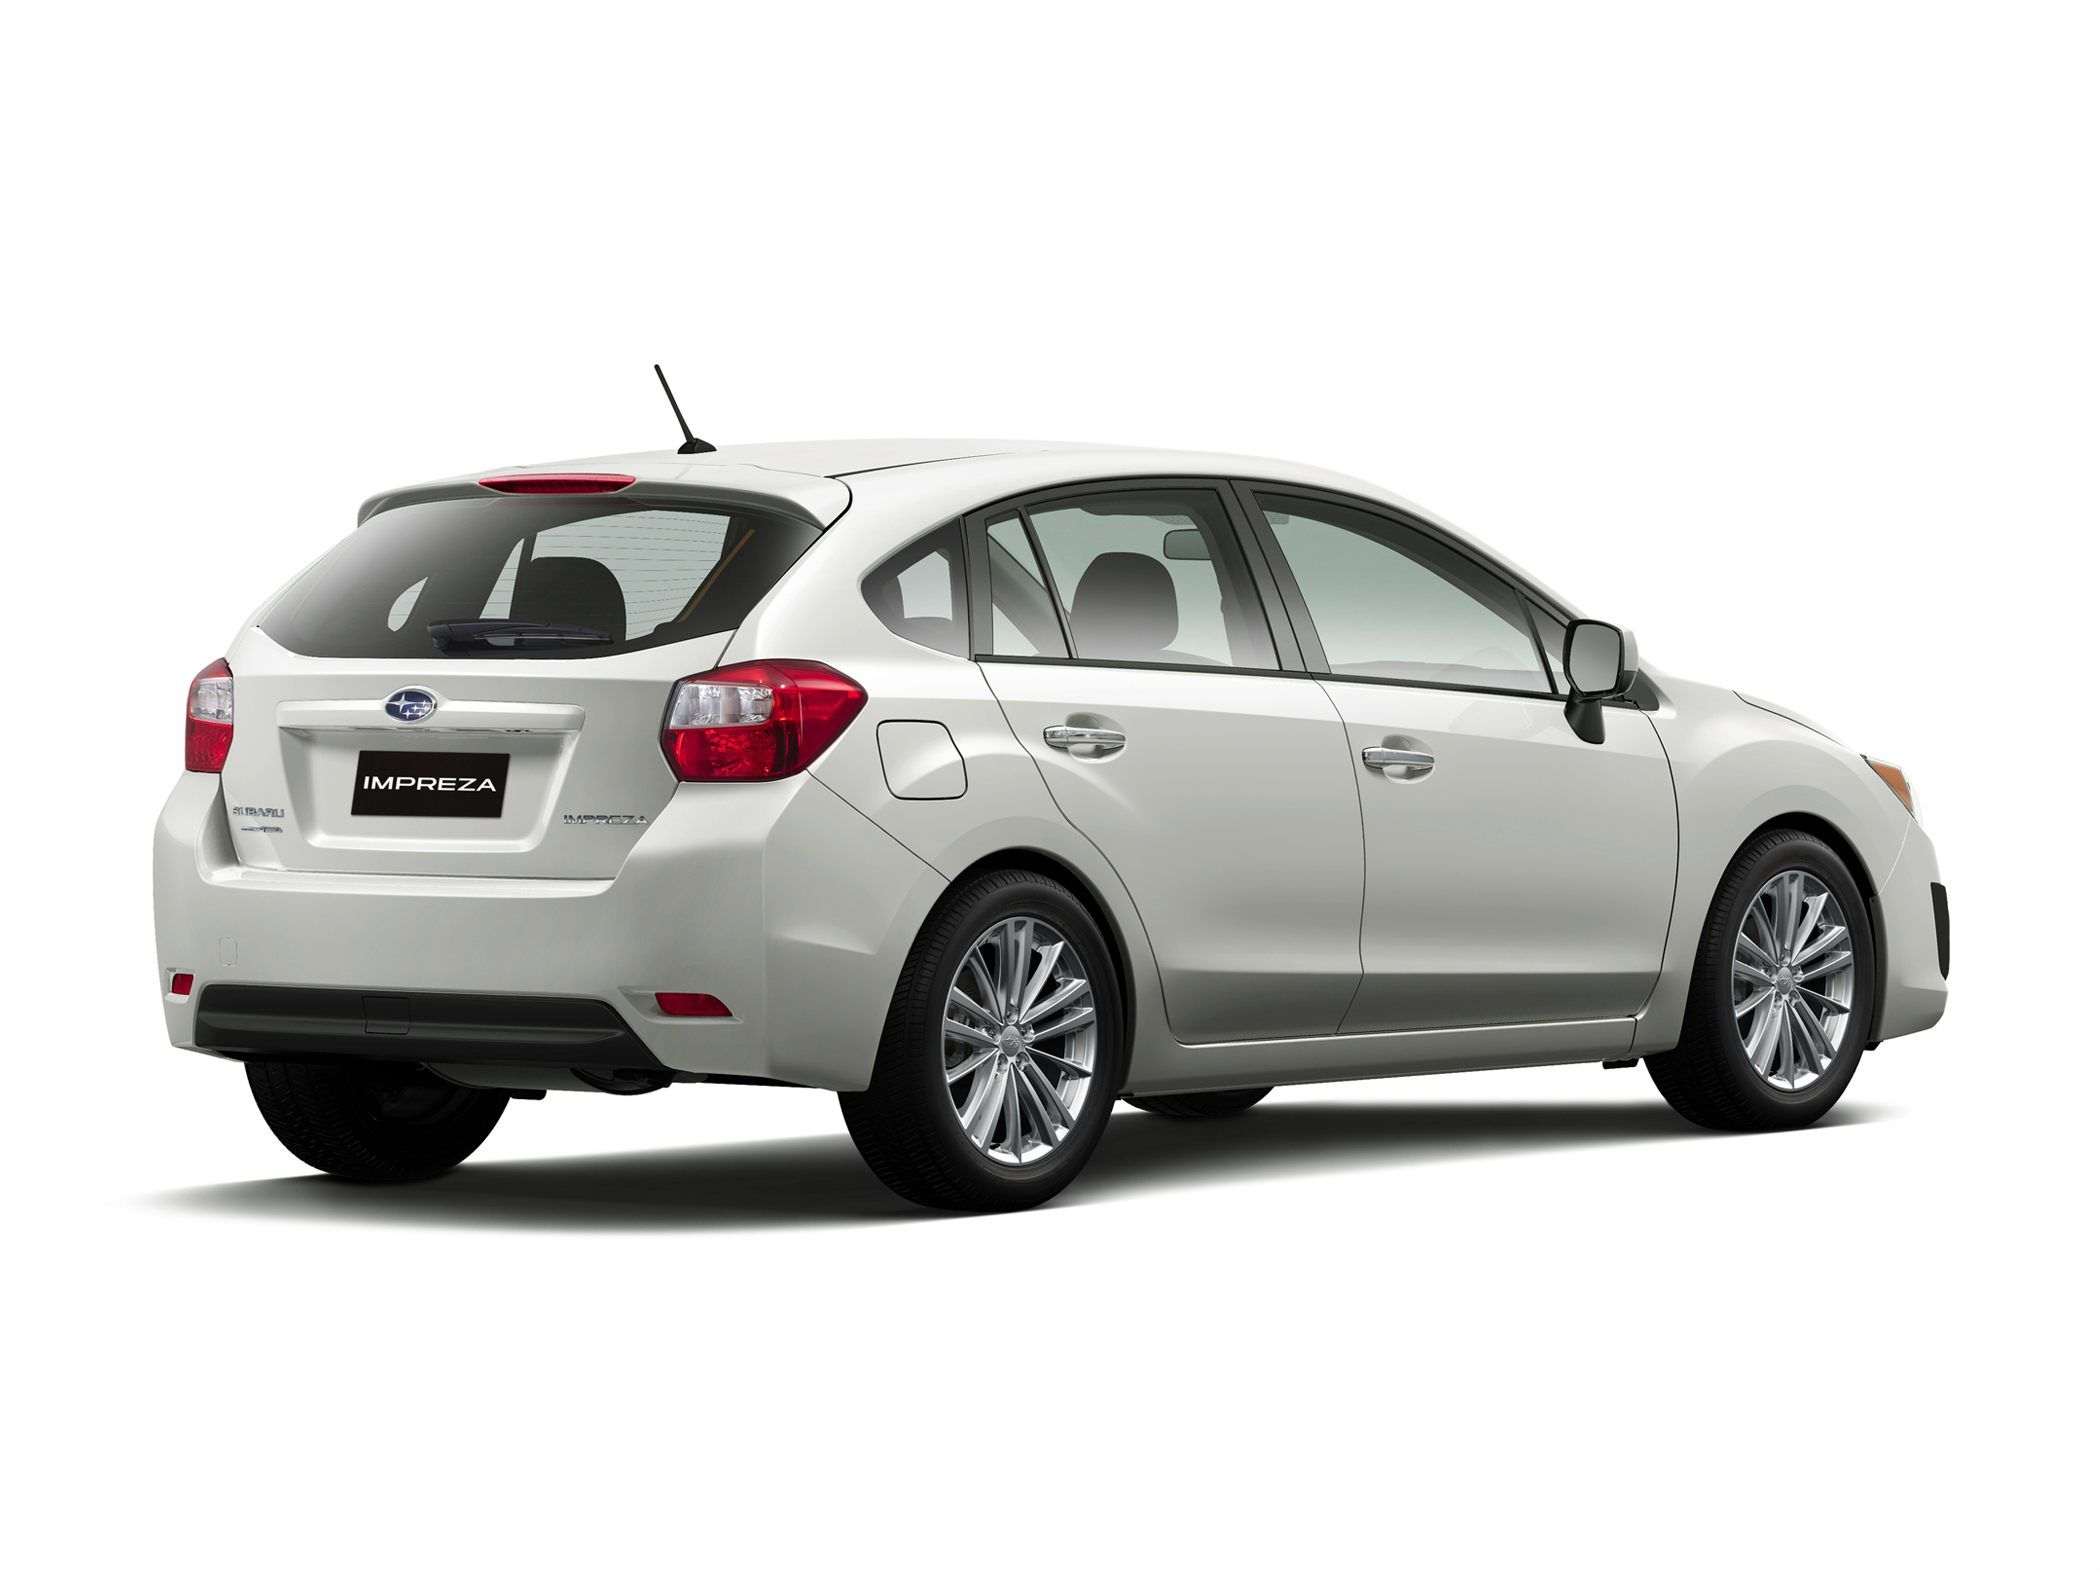 subaru impreza hatchback 2013 - google search | cars | pinterest